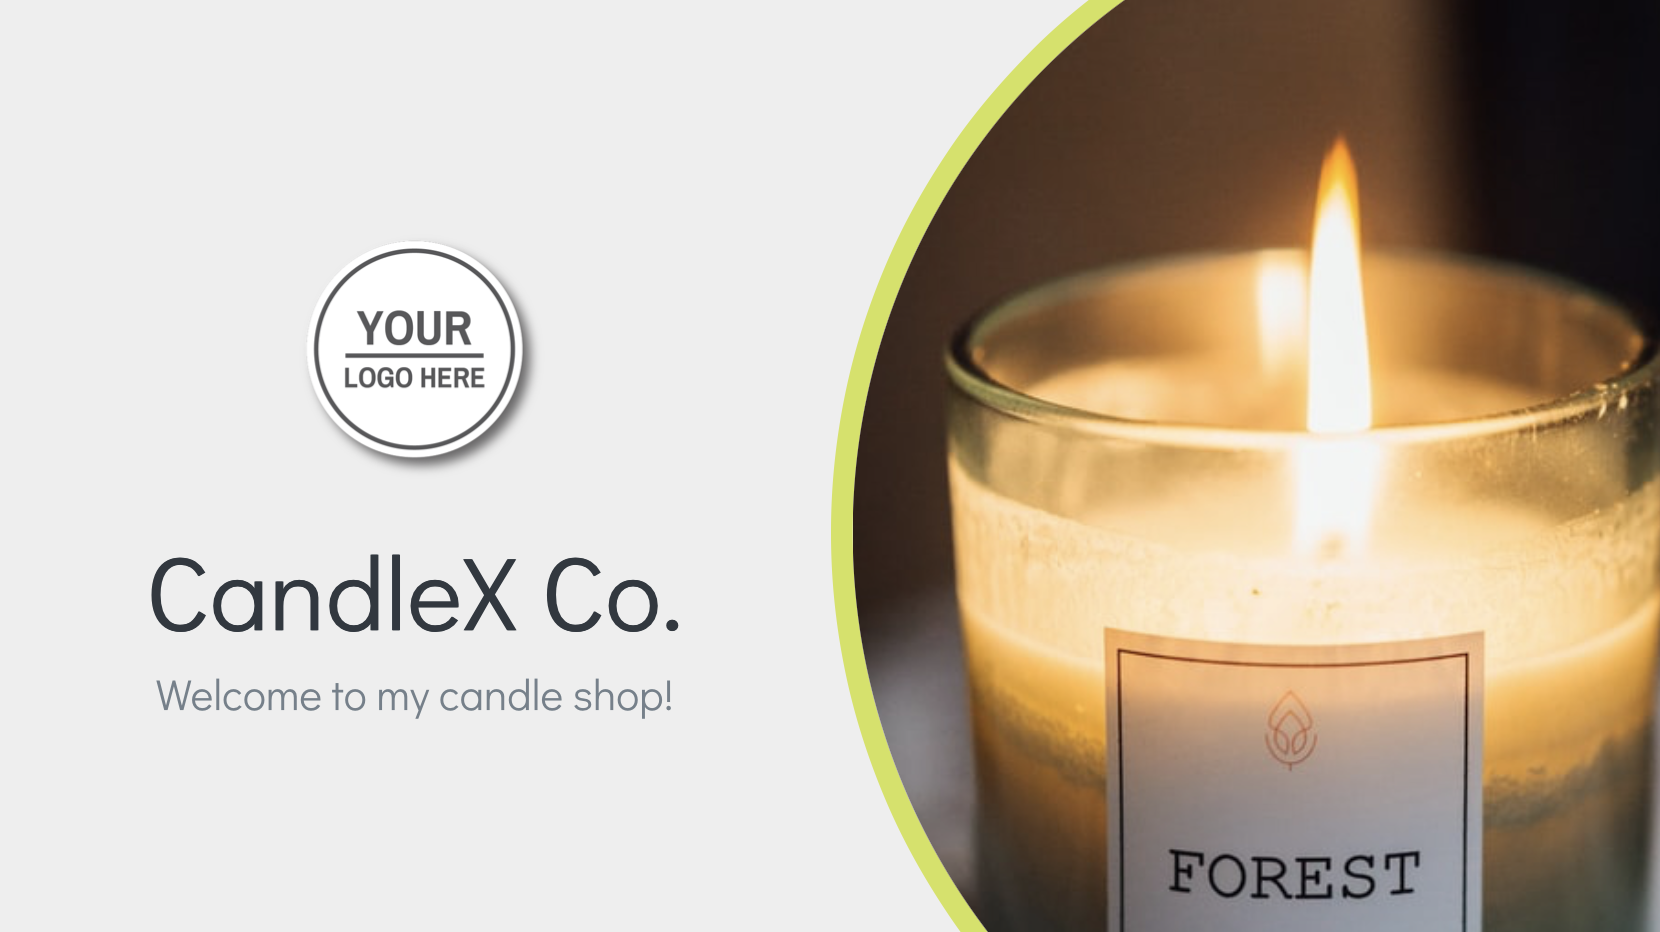 Are you starting your small shop? You need a decent looking shop but no design and coding skills? Try this one! Connect your domain and voila! What's stopping you?